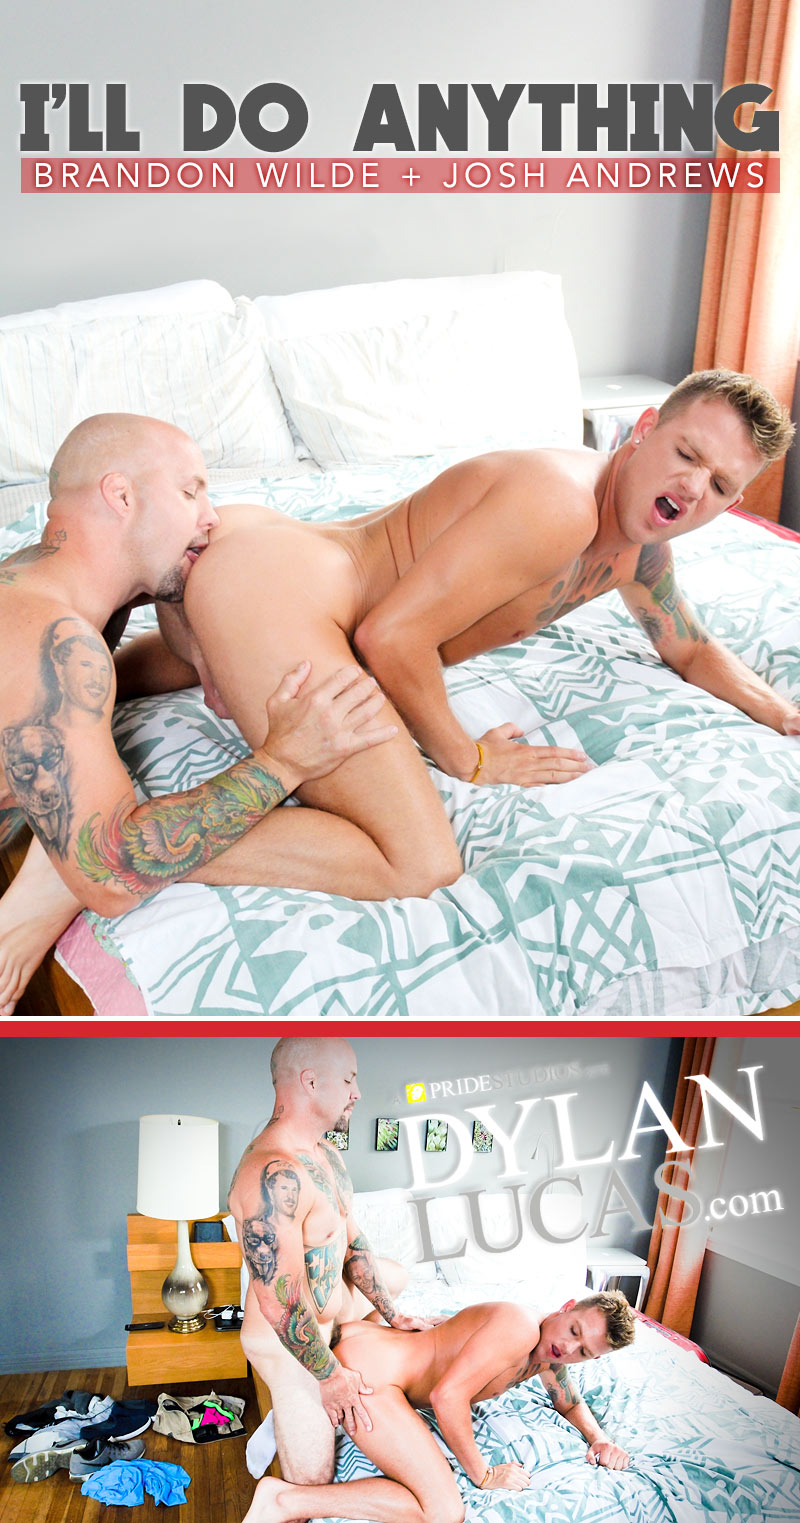 I'll Do Anything (Brandon Wilde and His Stepdad Josh Andrews Flip-Fuck) at DylanLucas